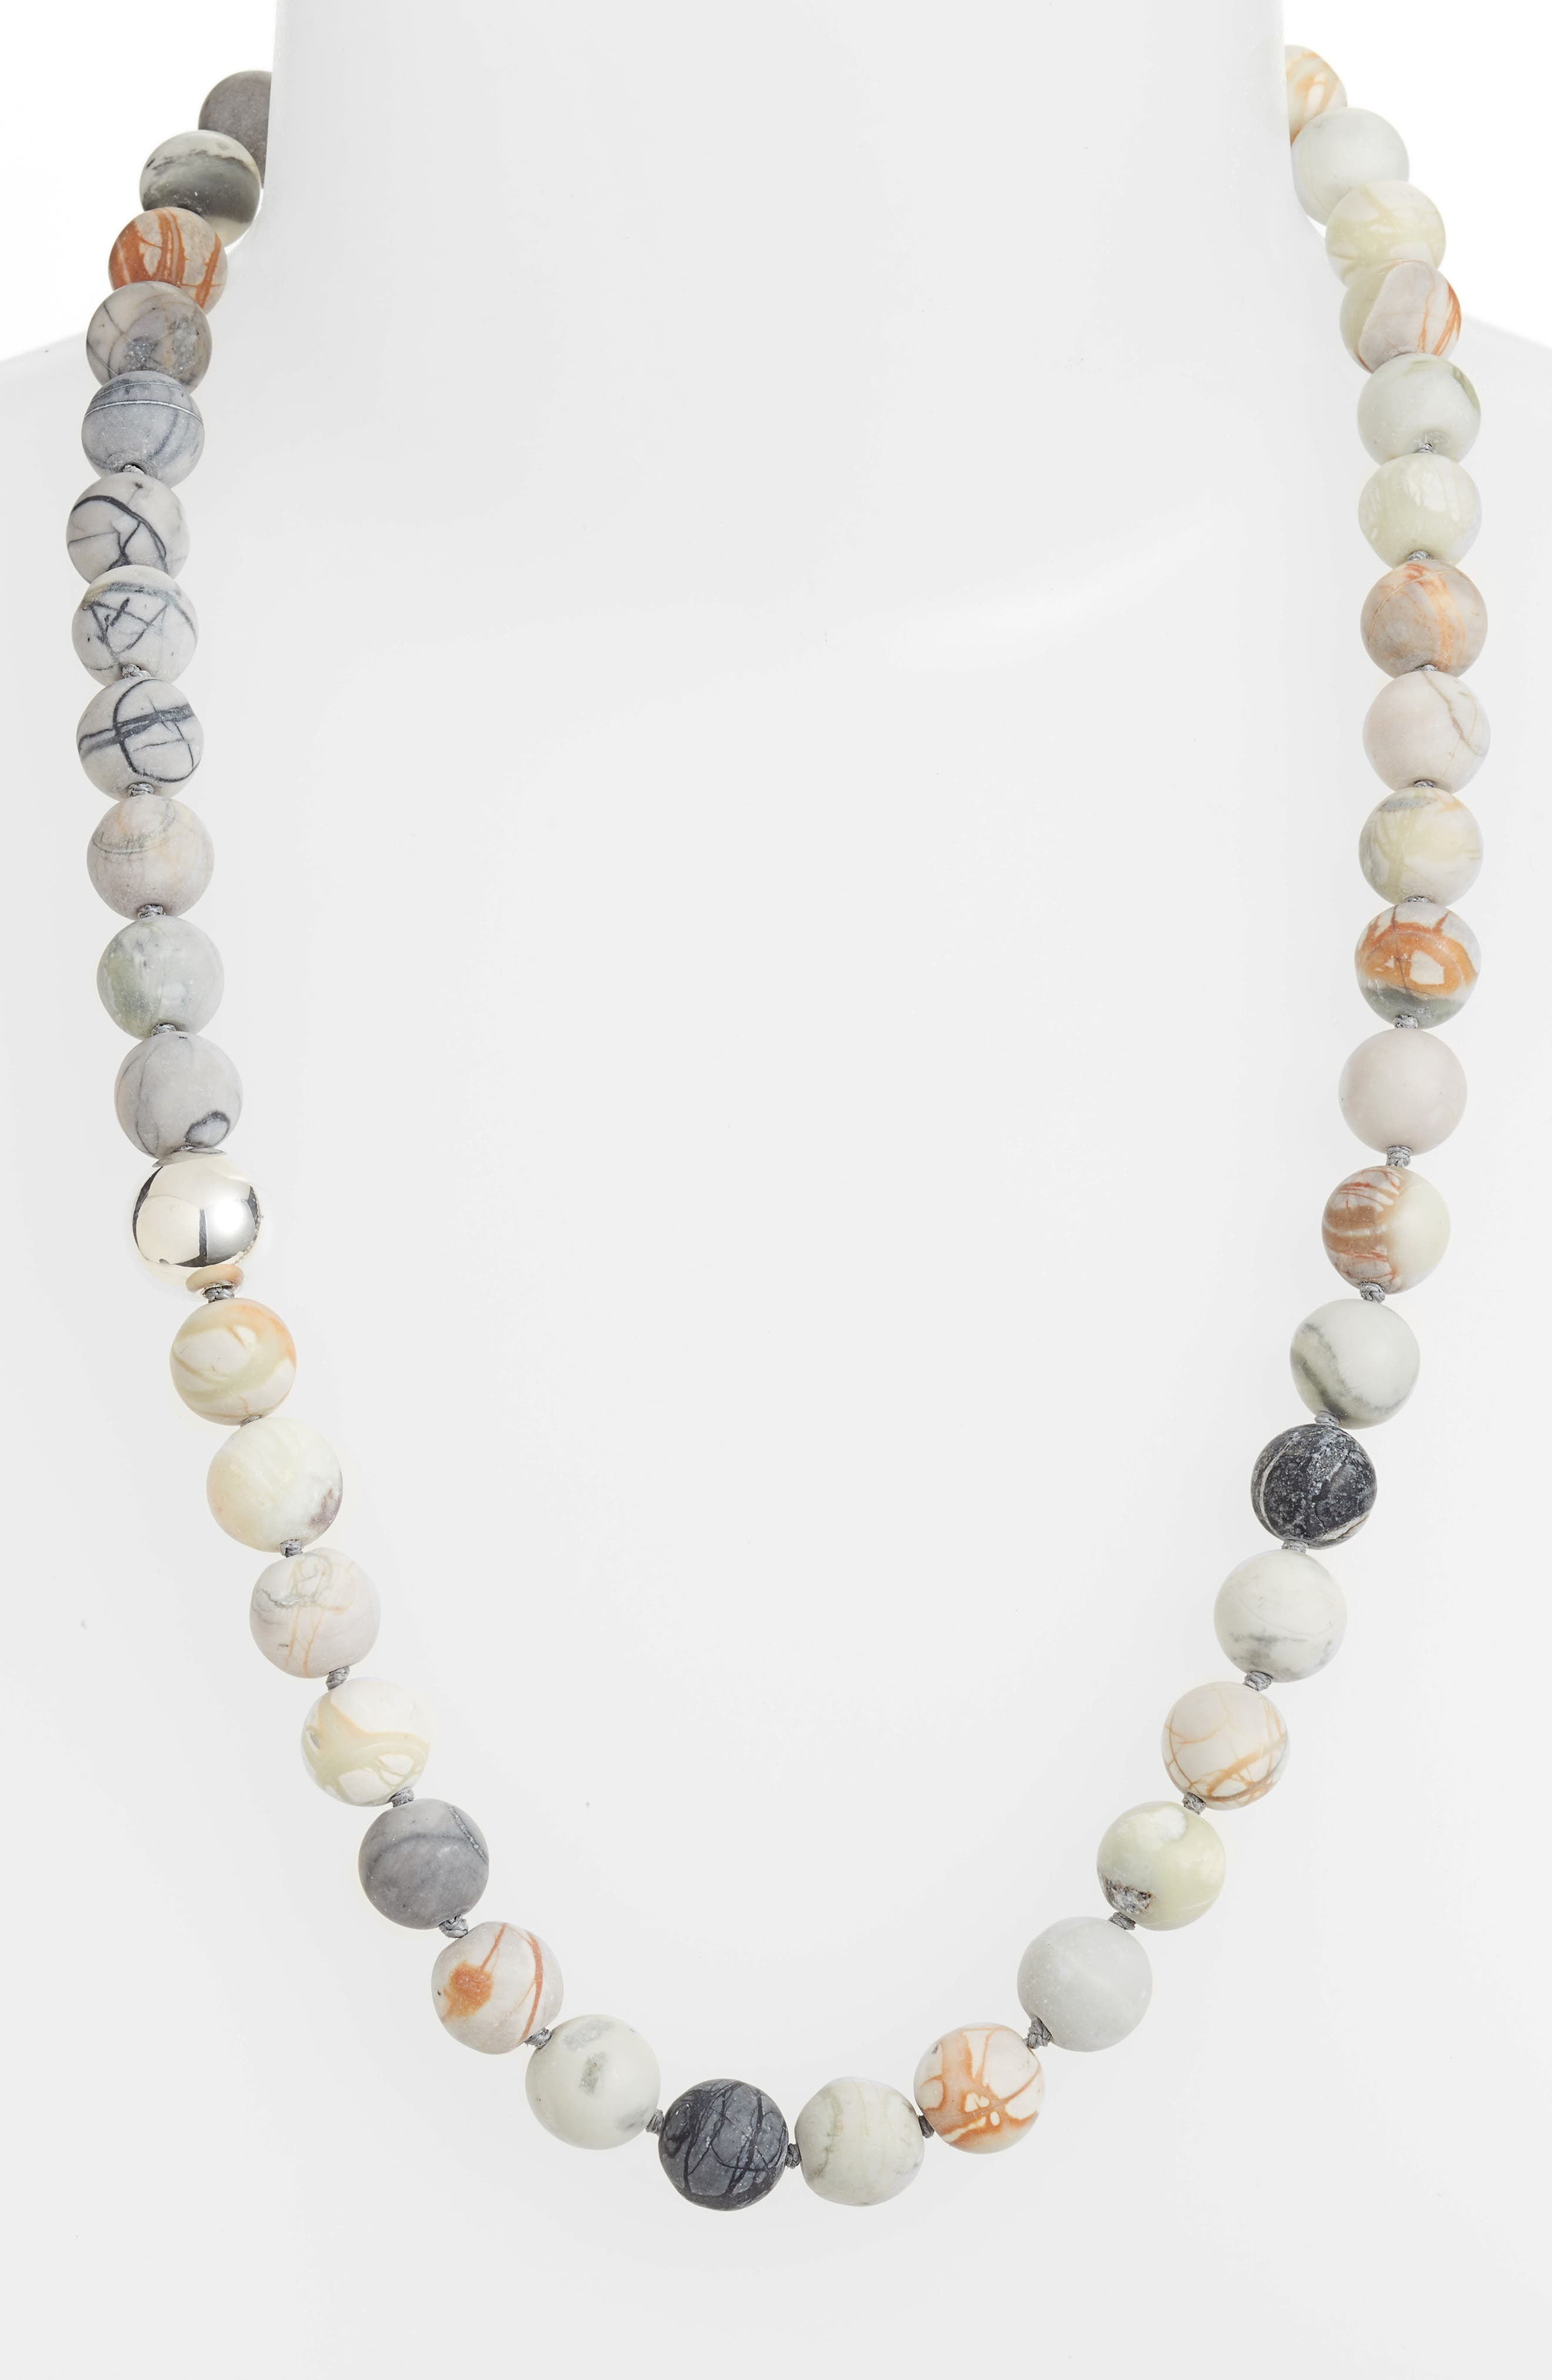 Matte Picasso Bead Necklace,                             Main thumbnail 1, color,                             Stone/ Silver